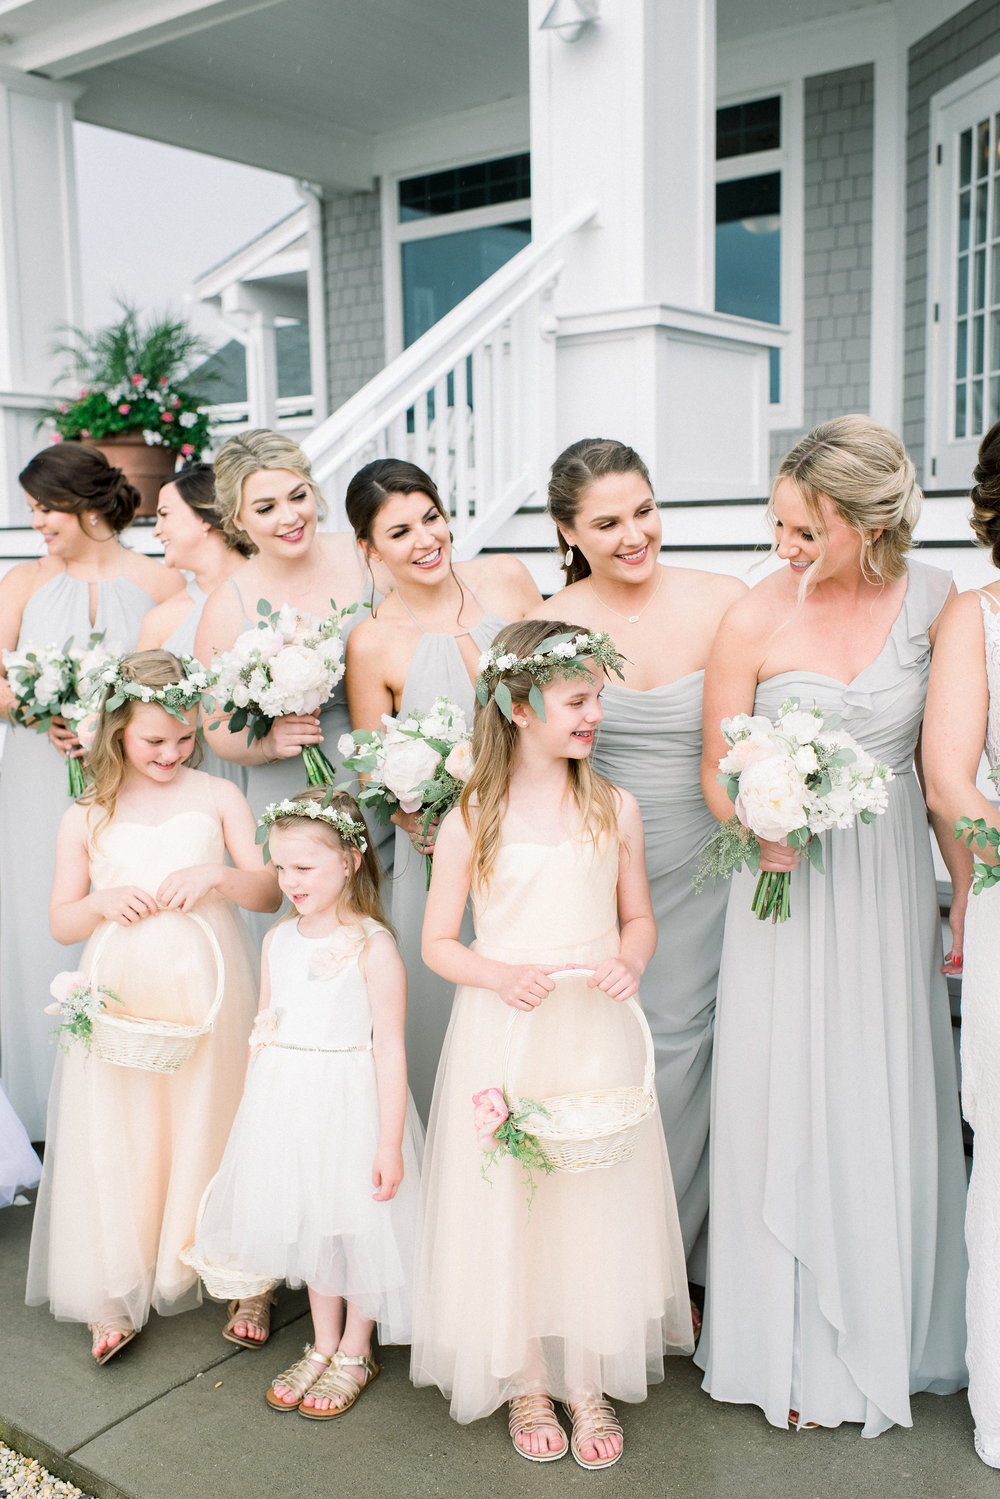 Avalon Wedding, NJ Bride, Flower Girl, Bridesmaid, Green and White, Flower Crown, Head Wreath, Hillary Muelleck Photopgrahy